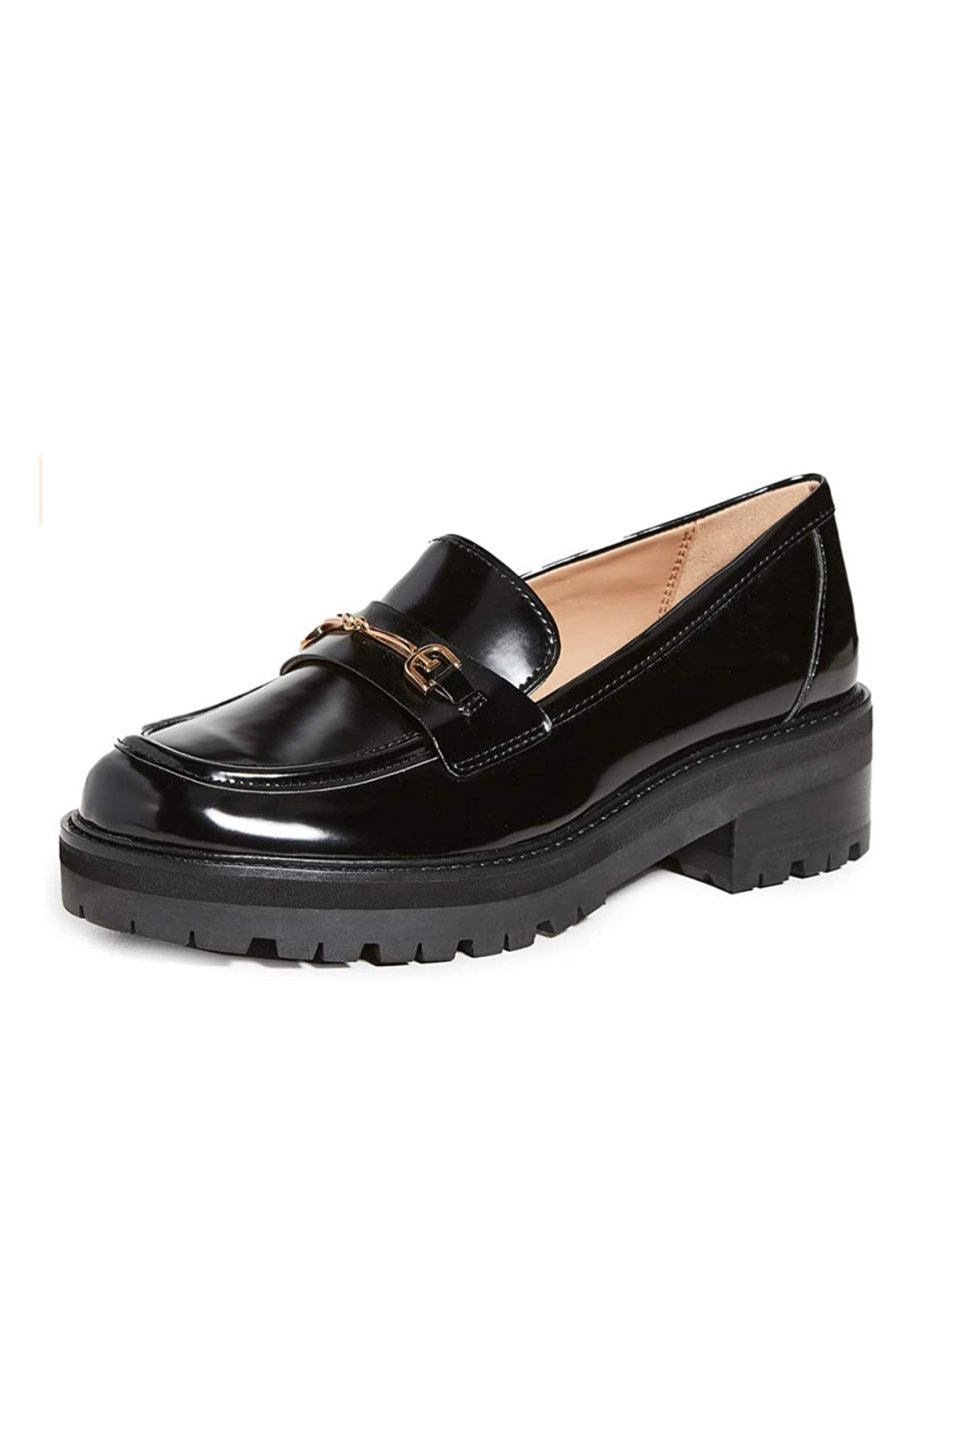 """<p><strong>Sam Edelman</strong></p><p>amazon.com</p><p><strong>$250.63</strong></p><p><a href=""""https://www.amazon.com/dp/B089ZYQDX2?tag=syn-yahoo-20&ascsubtag=%5Bartid%7C10058.g.34480122%5Bsrc%7Cyahoo-us"""" rel=""""nofollow noopener"""" target=""""_blank"""" data-ylk=""""slk:SHOP IT"""" class=""""link rapid-noclick-resp"""">SHOP IT</a></p><p>Everyone needs a pair of loafers in their closet and this one has a classic preppy style that can be dressed up with tights or simple wool socks. Pair this with the pink blazer and she'll be an unstoppable force in fashion.</p>"""